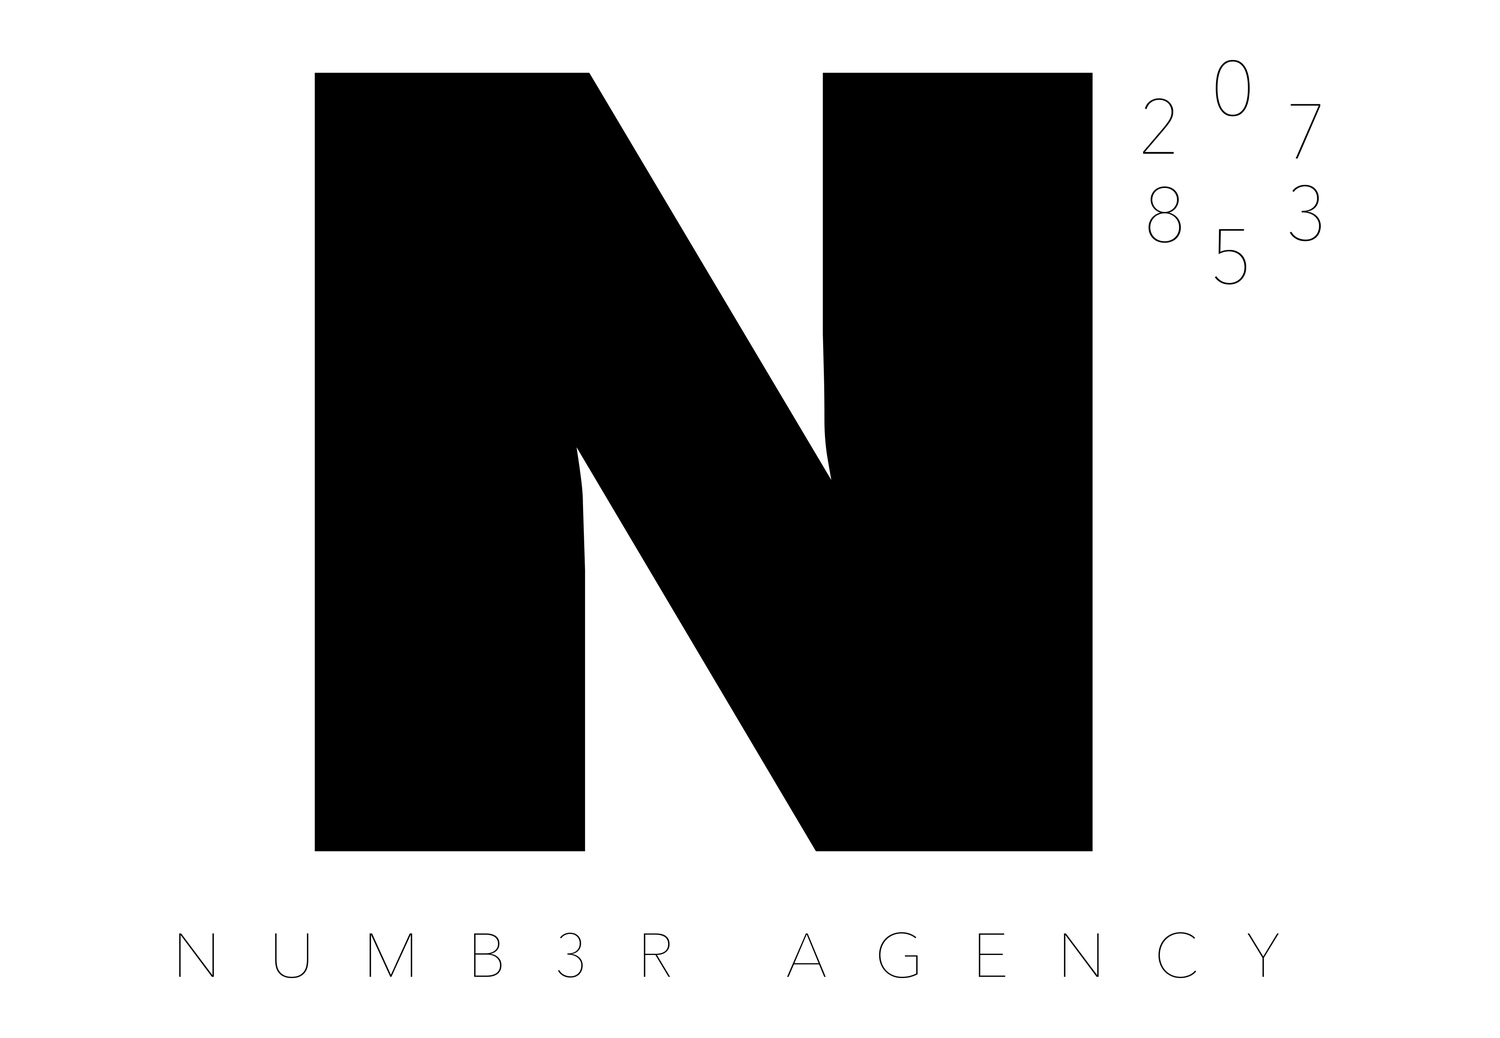 The Numb3r Agency